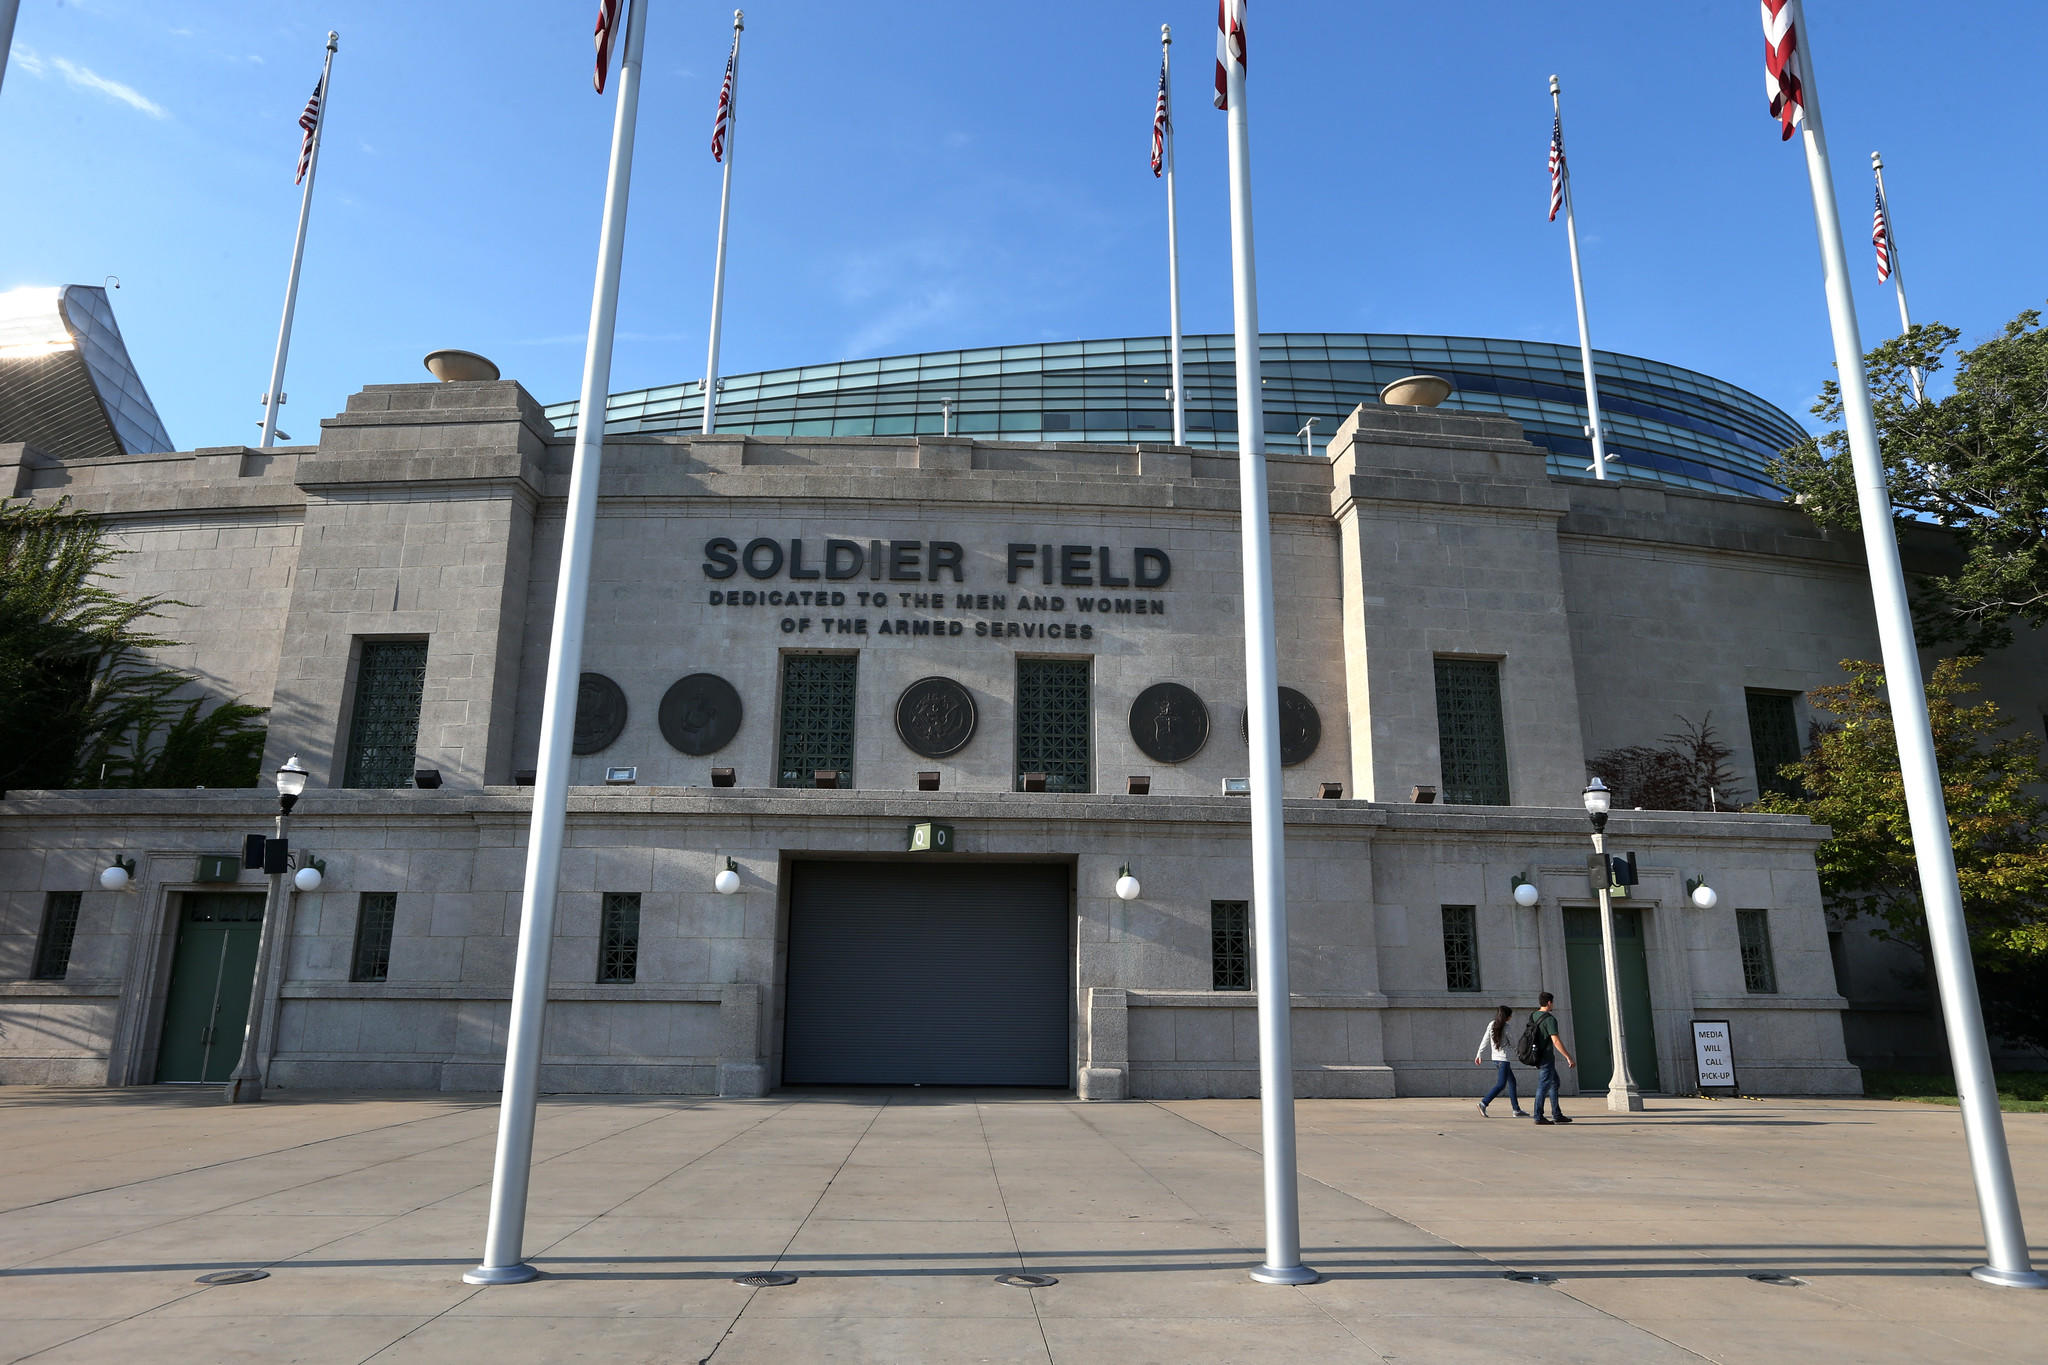 Exterior of Soldier Field in Chicago on Wednesday, September 4, 2013.